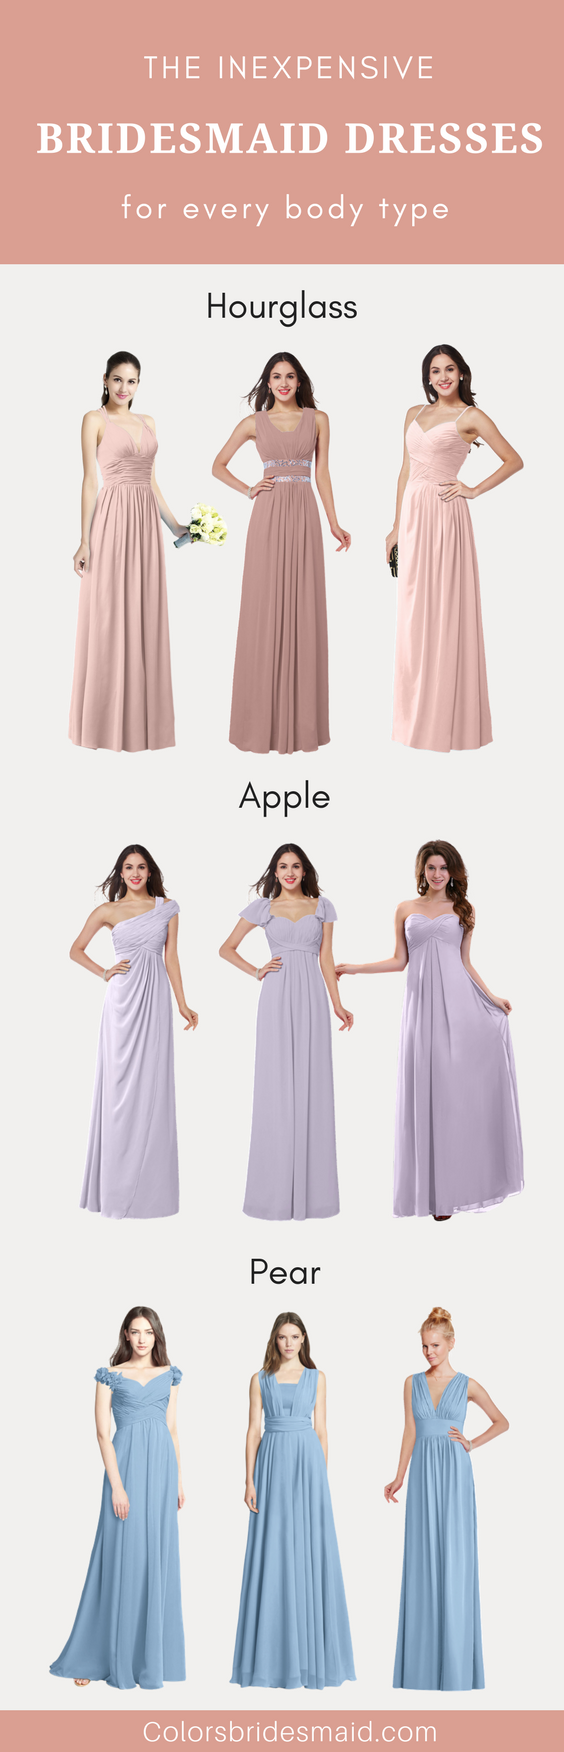 Amazing inexpensive bridesmaid dresses under 100 image wedding magnificent inexpensive bridesmaid dresses under 100 ideas wedding ombrellifo Image collections